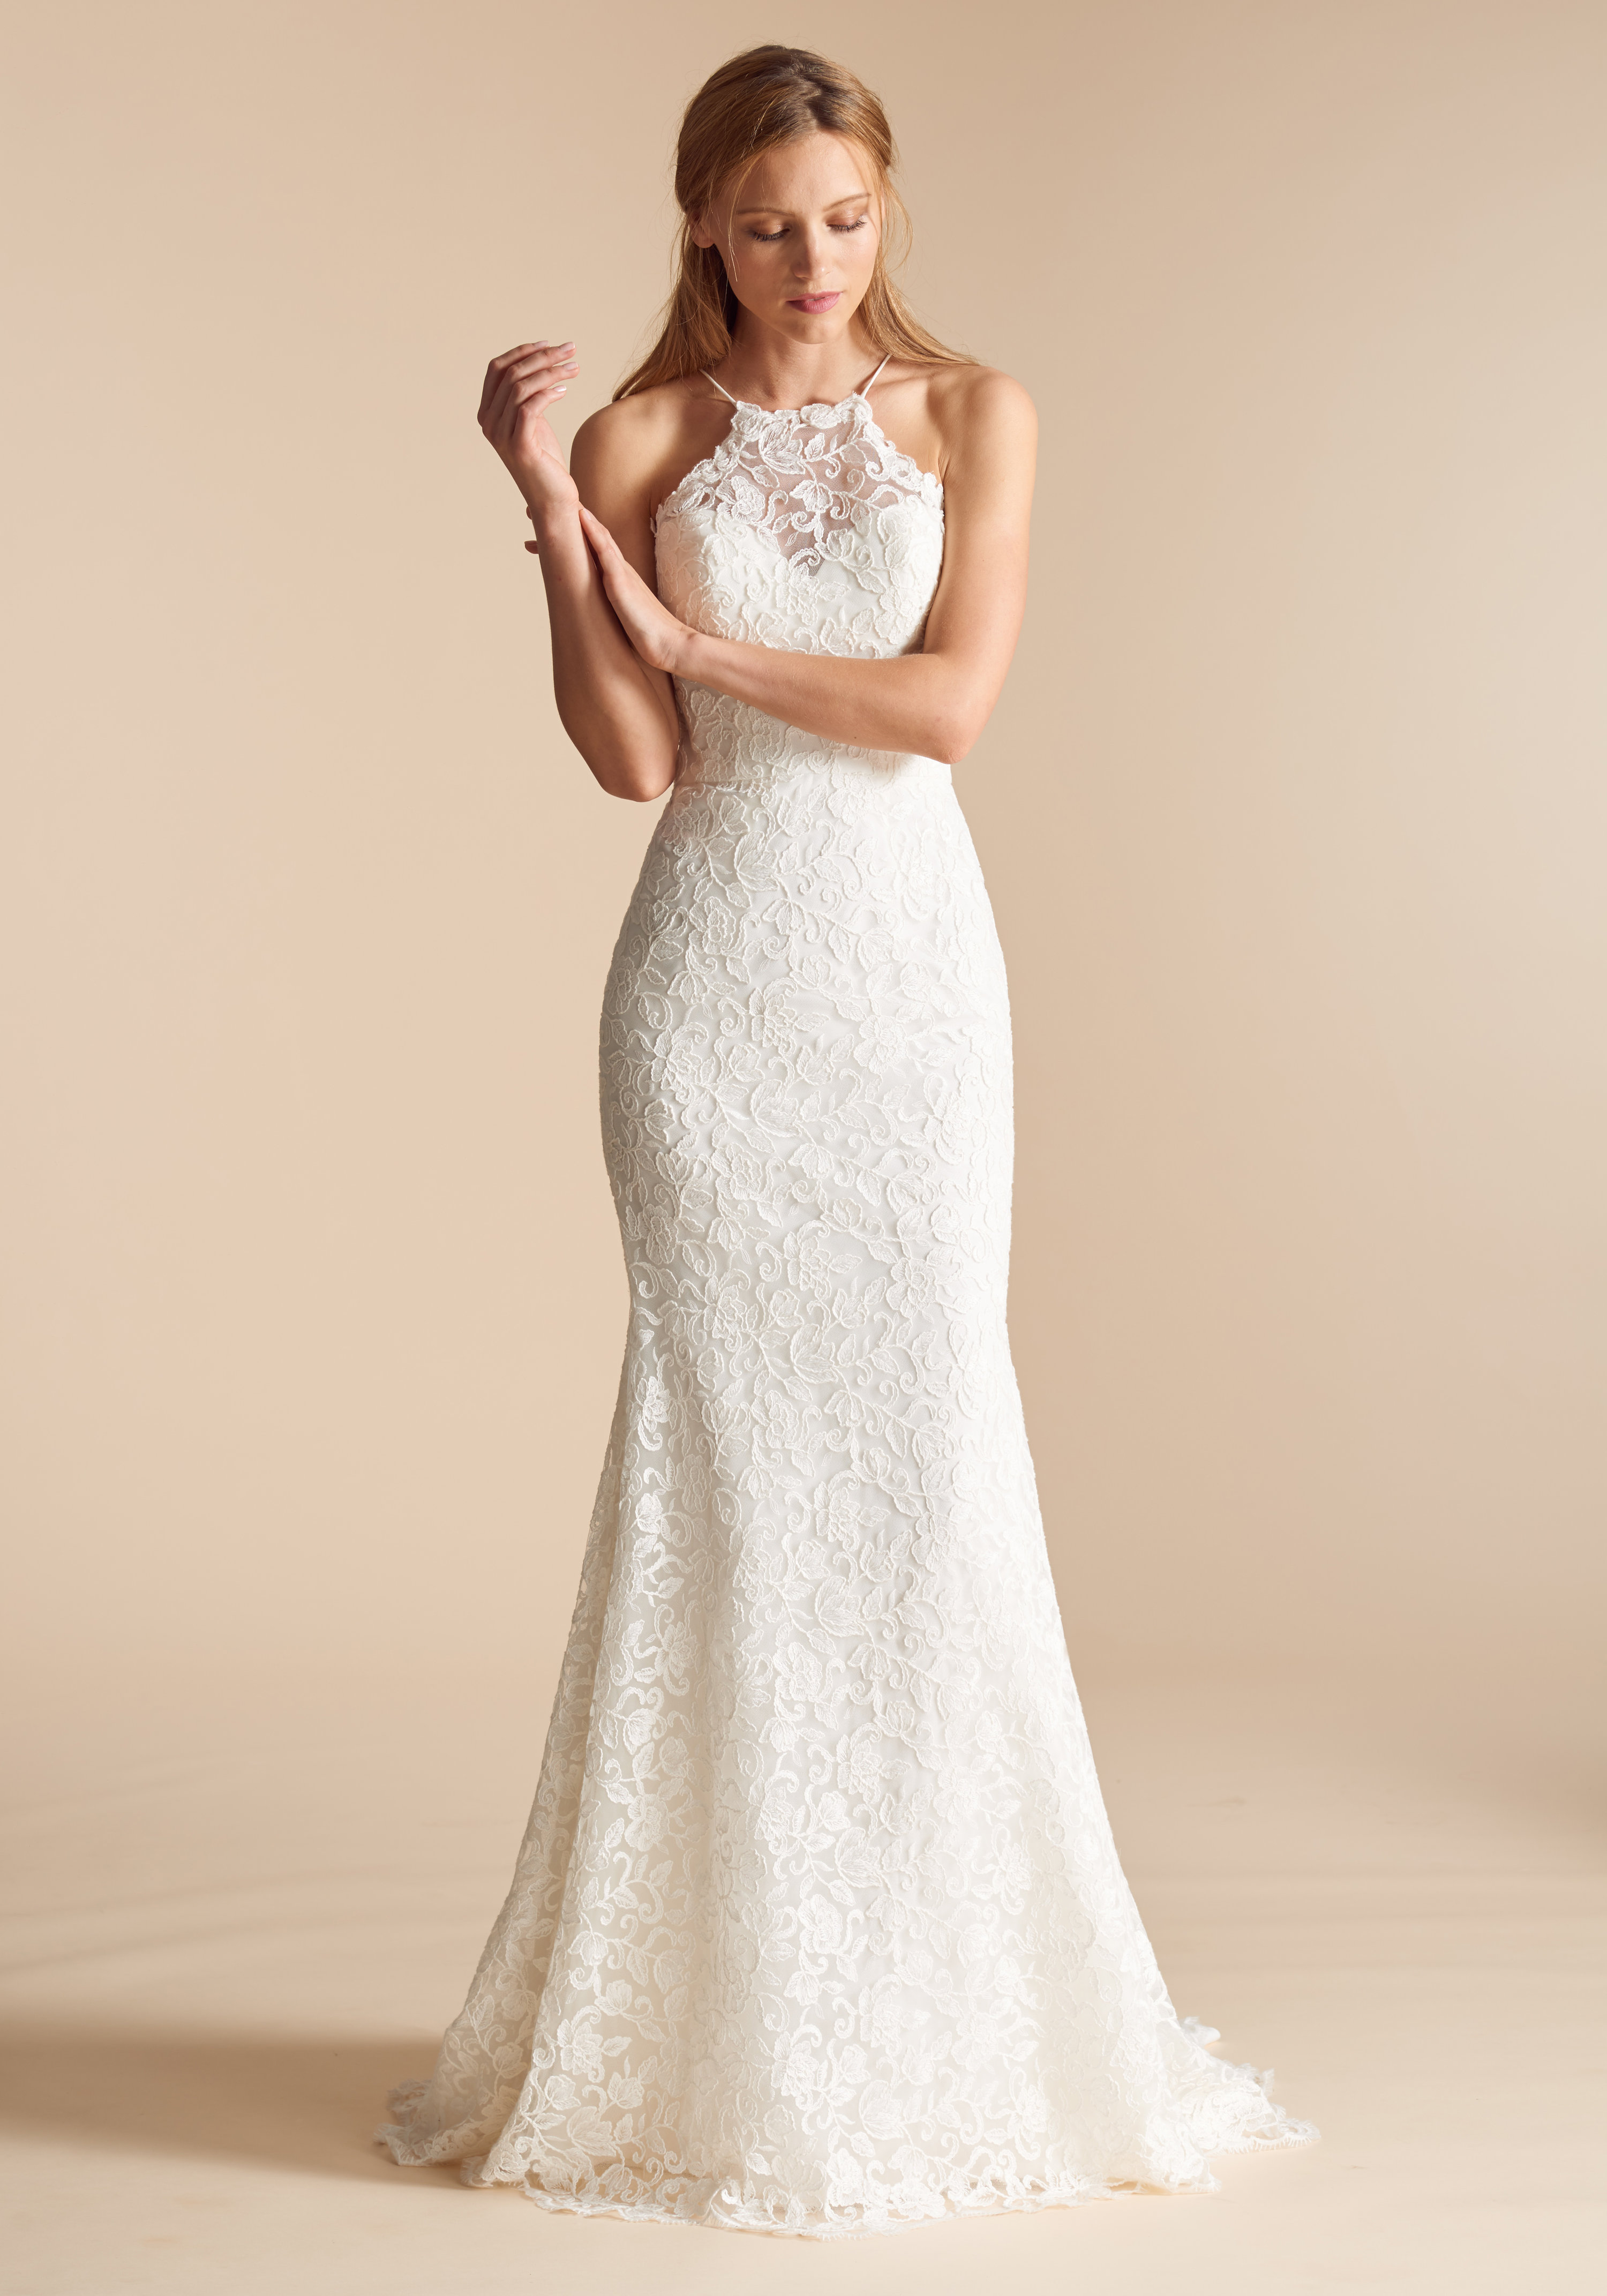 Bridal Gowns and Wedding Dresses by JLM Couture - Style 7808 Sydney